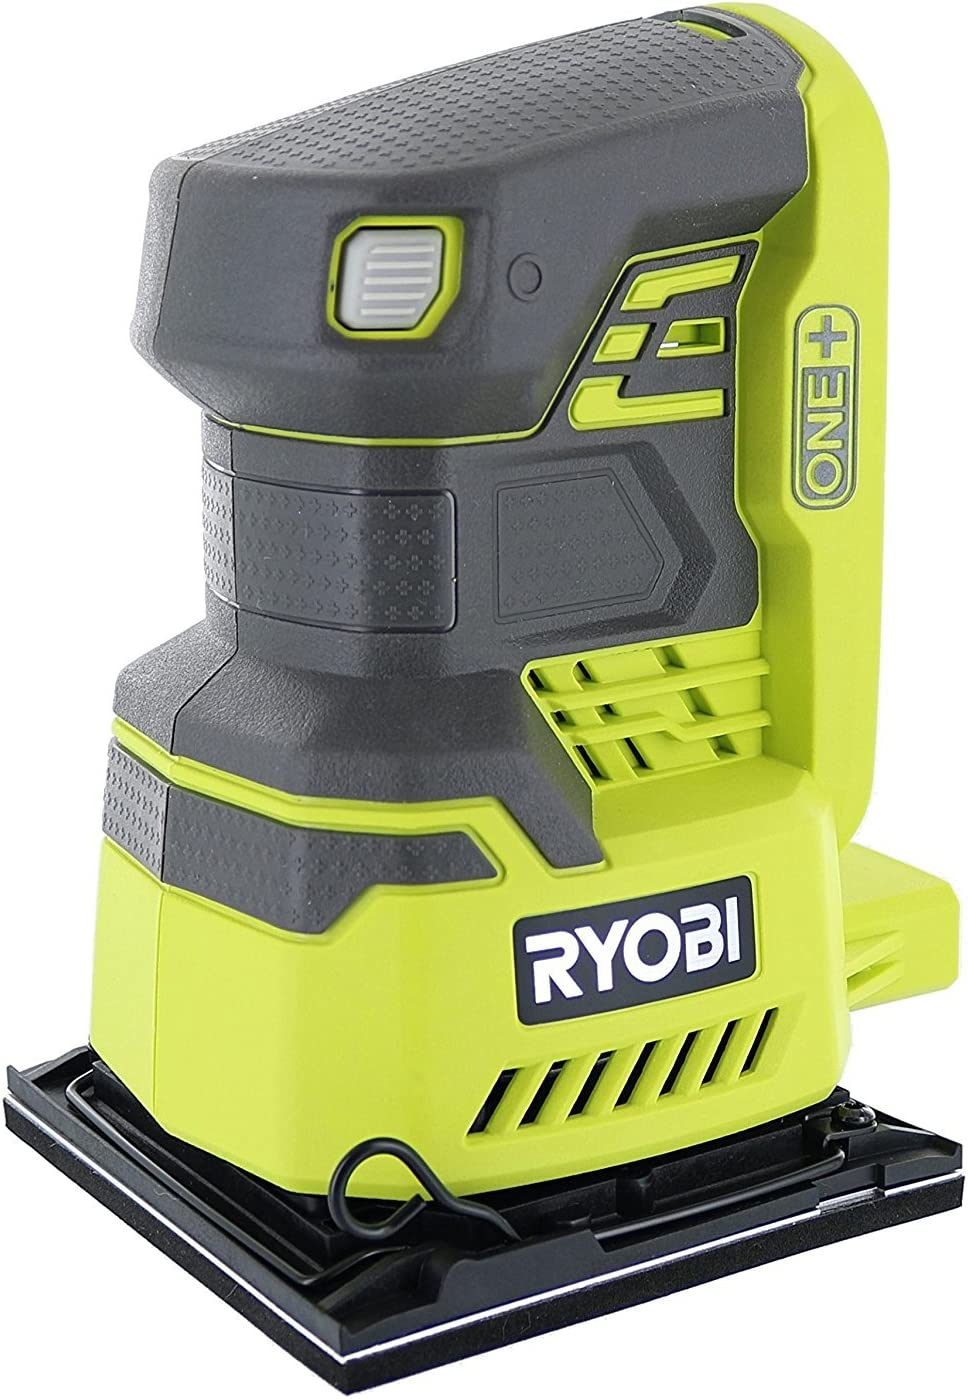 Ryobi P440 One 18V Lithium Ion 12,000 RPM 1 4 Sheet Palm Sander w Onboard Dust Bag and Included Sanding Pads Battery Not Included, Power Tool Only